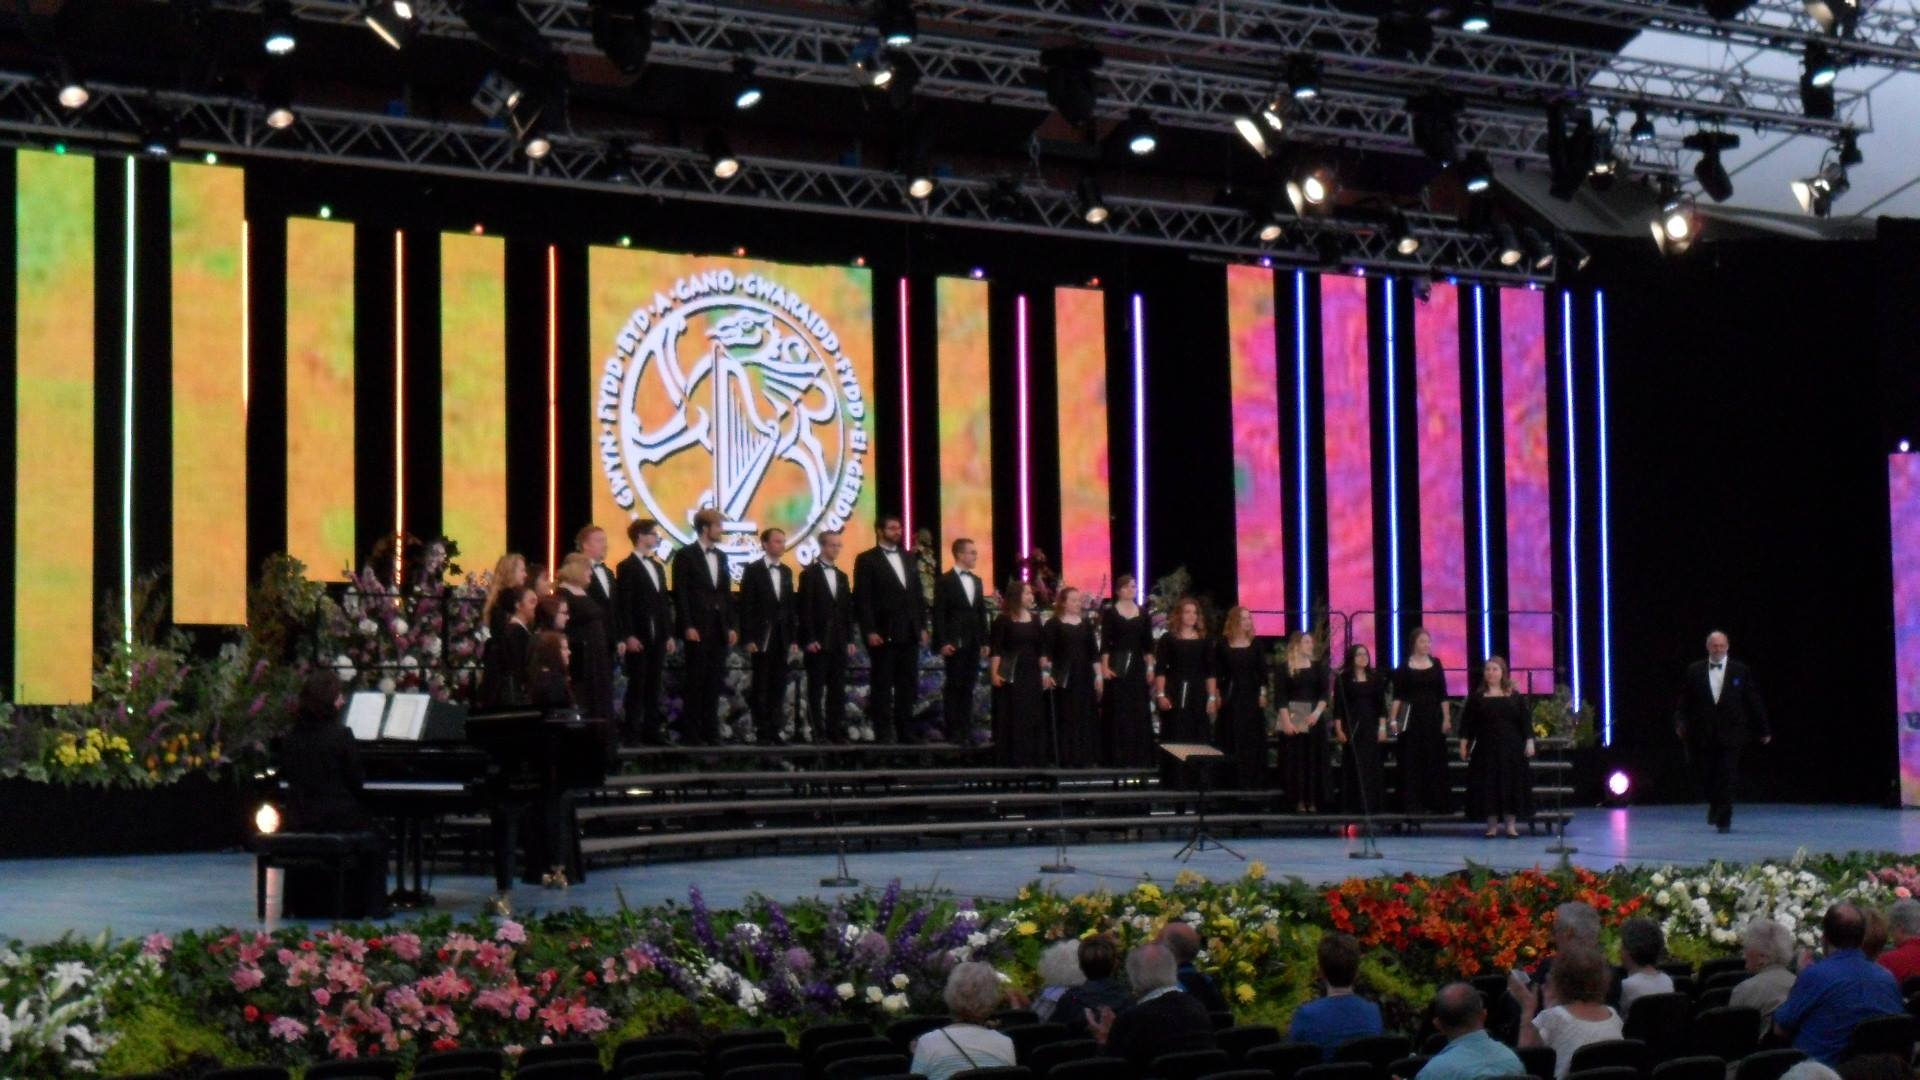 Clarion Chamber Singers at the Llangollen Eisteddfod in 2016.